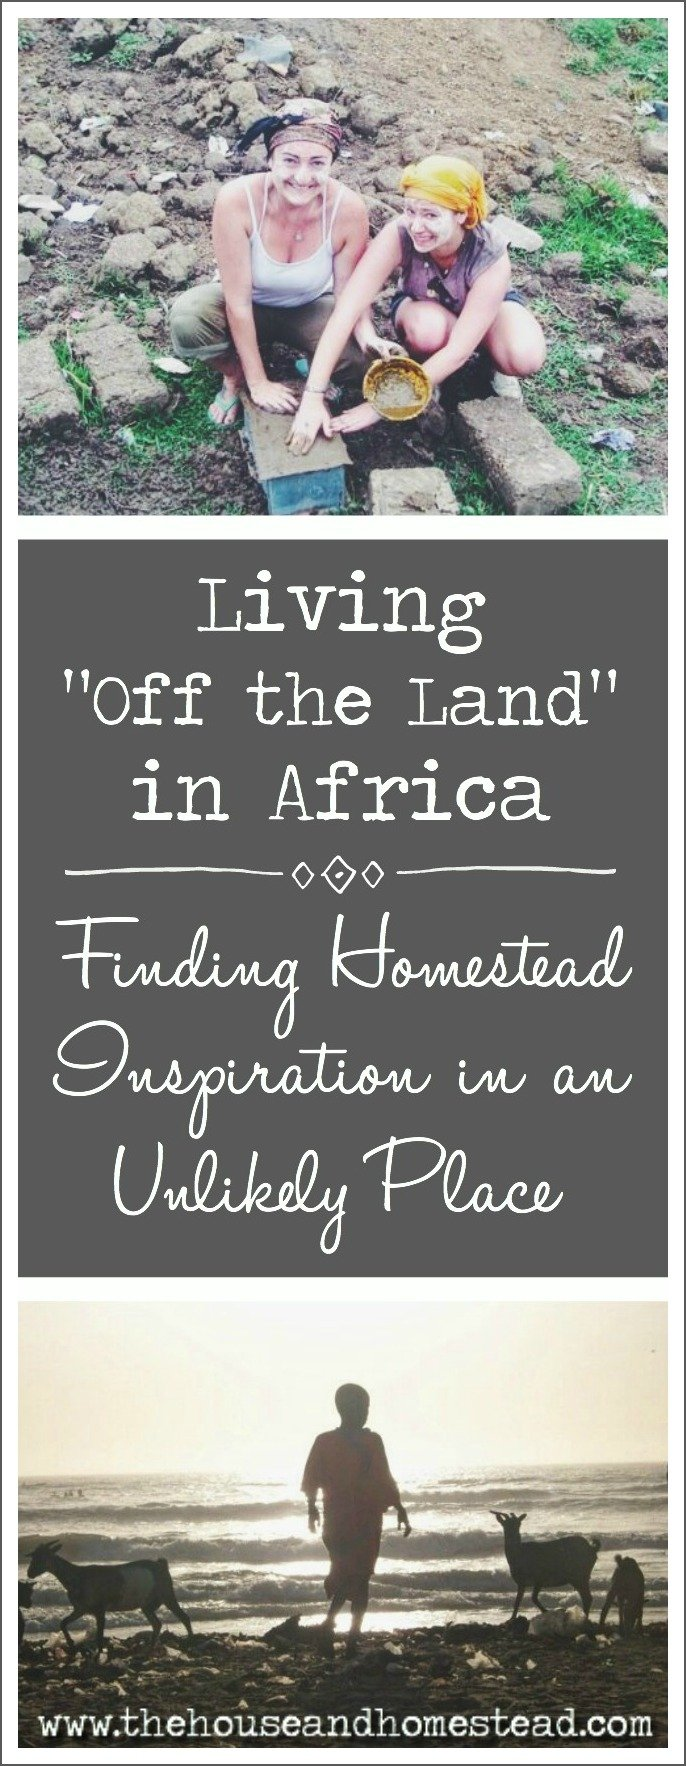 My homesteading journey traces its roots back to Africa where I learned first-hand what it meant to live off the land and make do with few resources. I didn't know it at the time, but this experience would put me on the path that would lead me into a life of self-reliant living that I never would have dreamed of when I booked that ticket all those years ago.